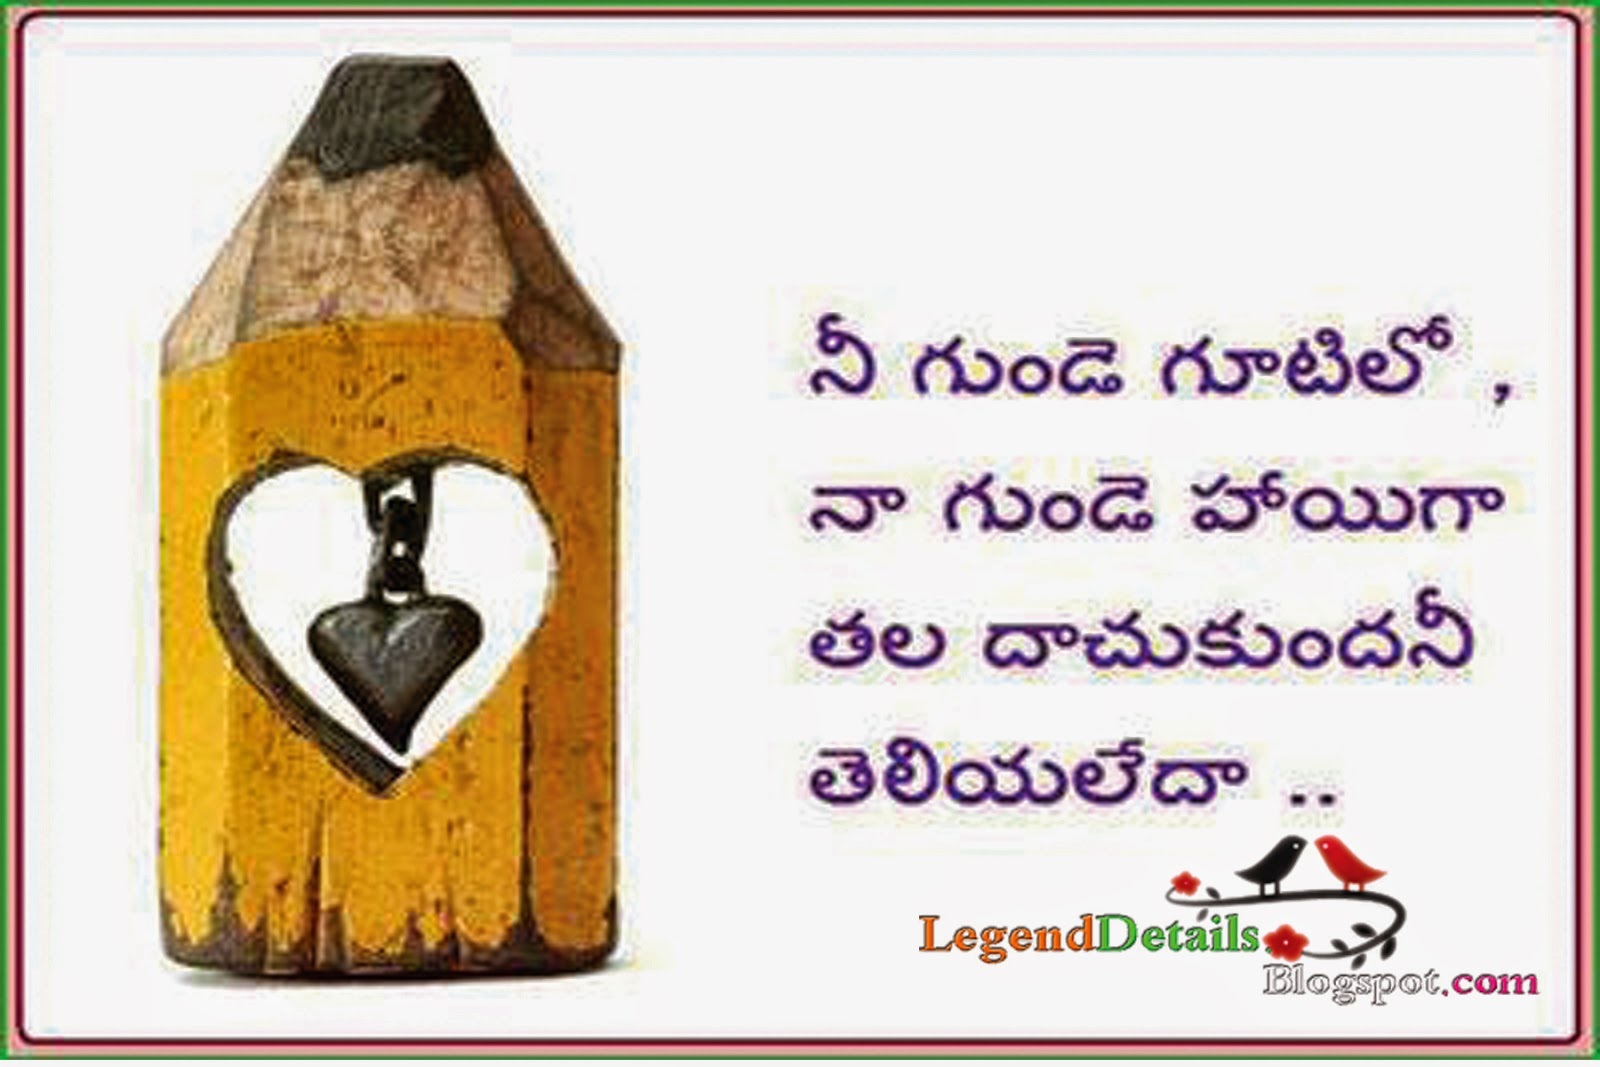 Famouse Love Quotes Famous New Telugu Love Quotes  Hd Wallpapers  Legendary Quotes